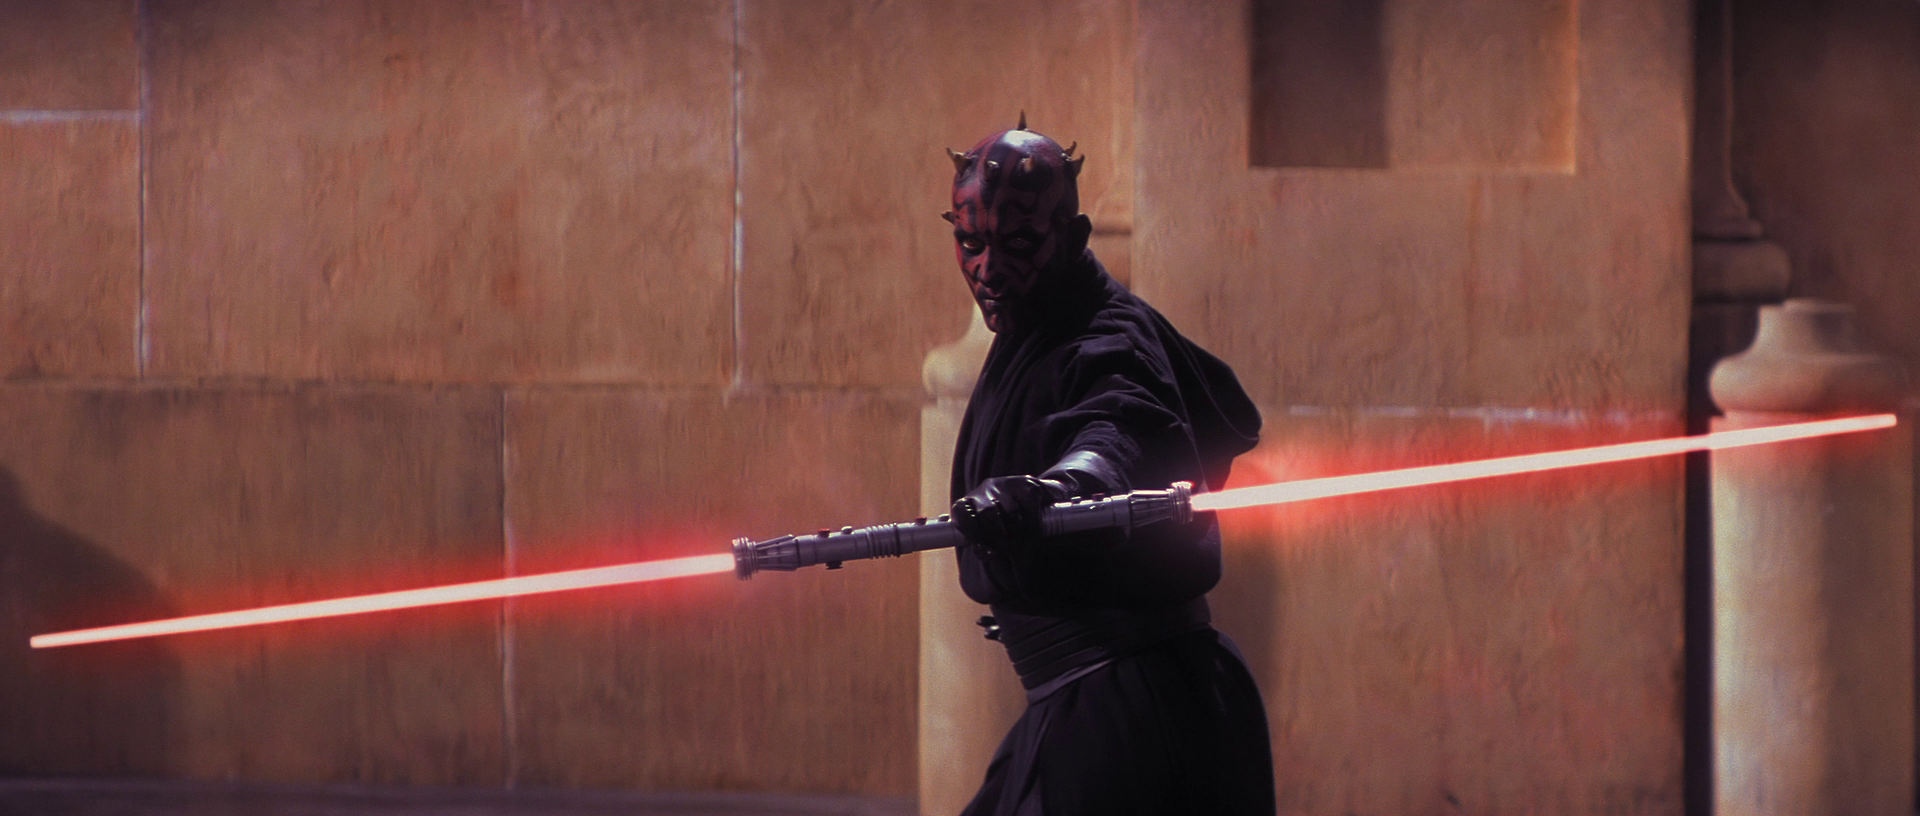 Cancelled Darth Maul Game May Be Resurrected - Red Fly Studio Looking To Re-Pitch Title